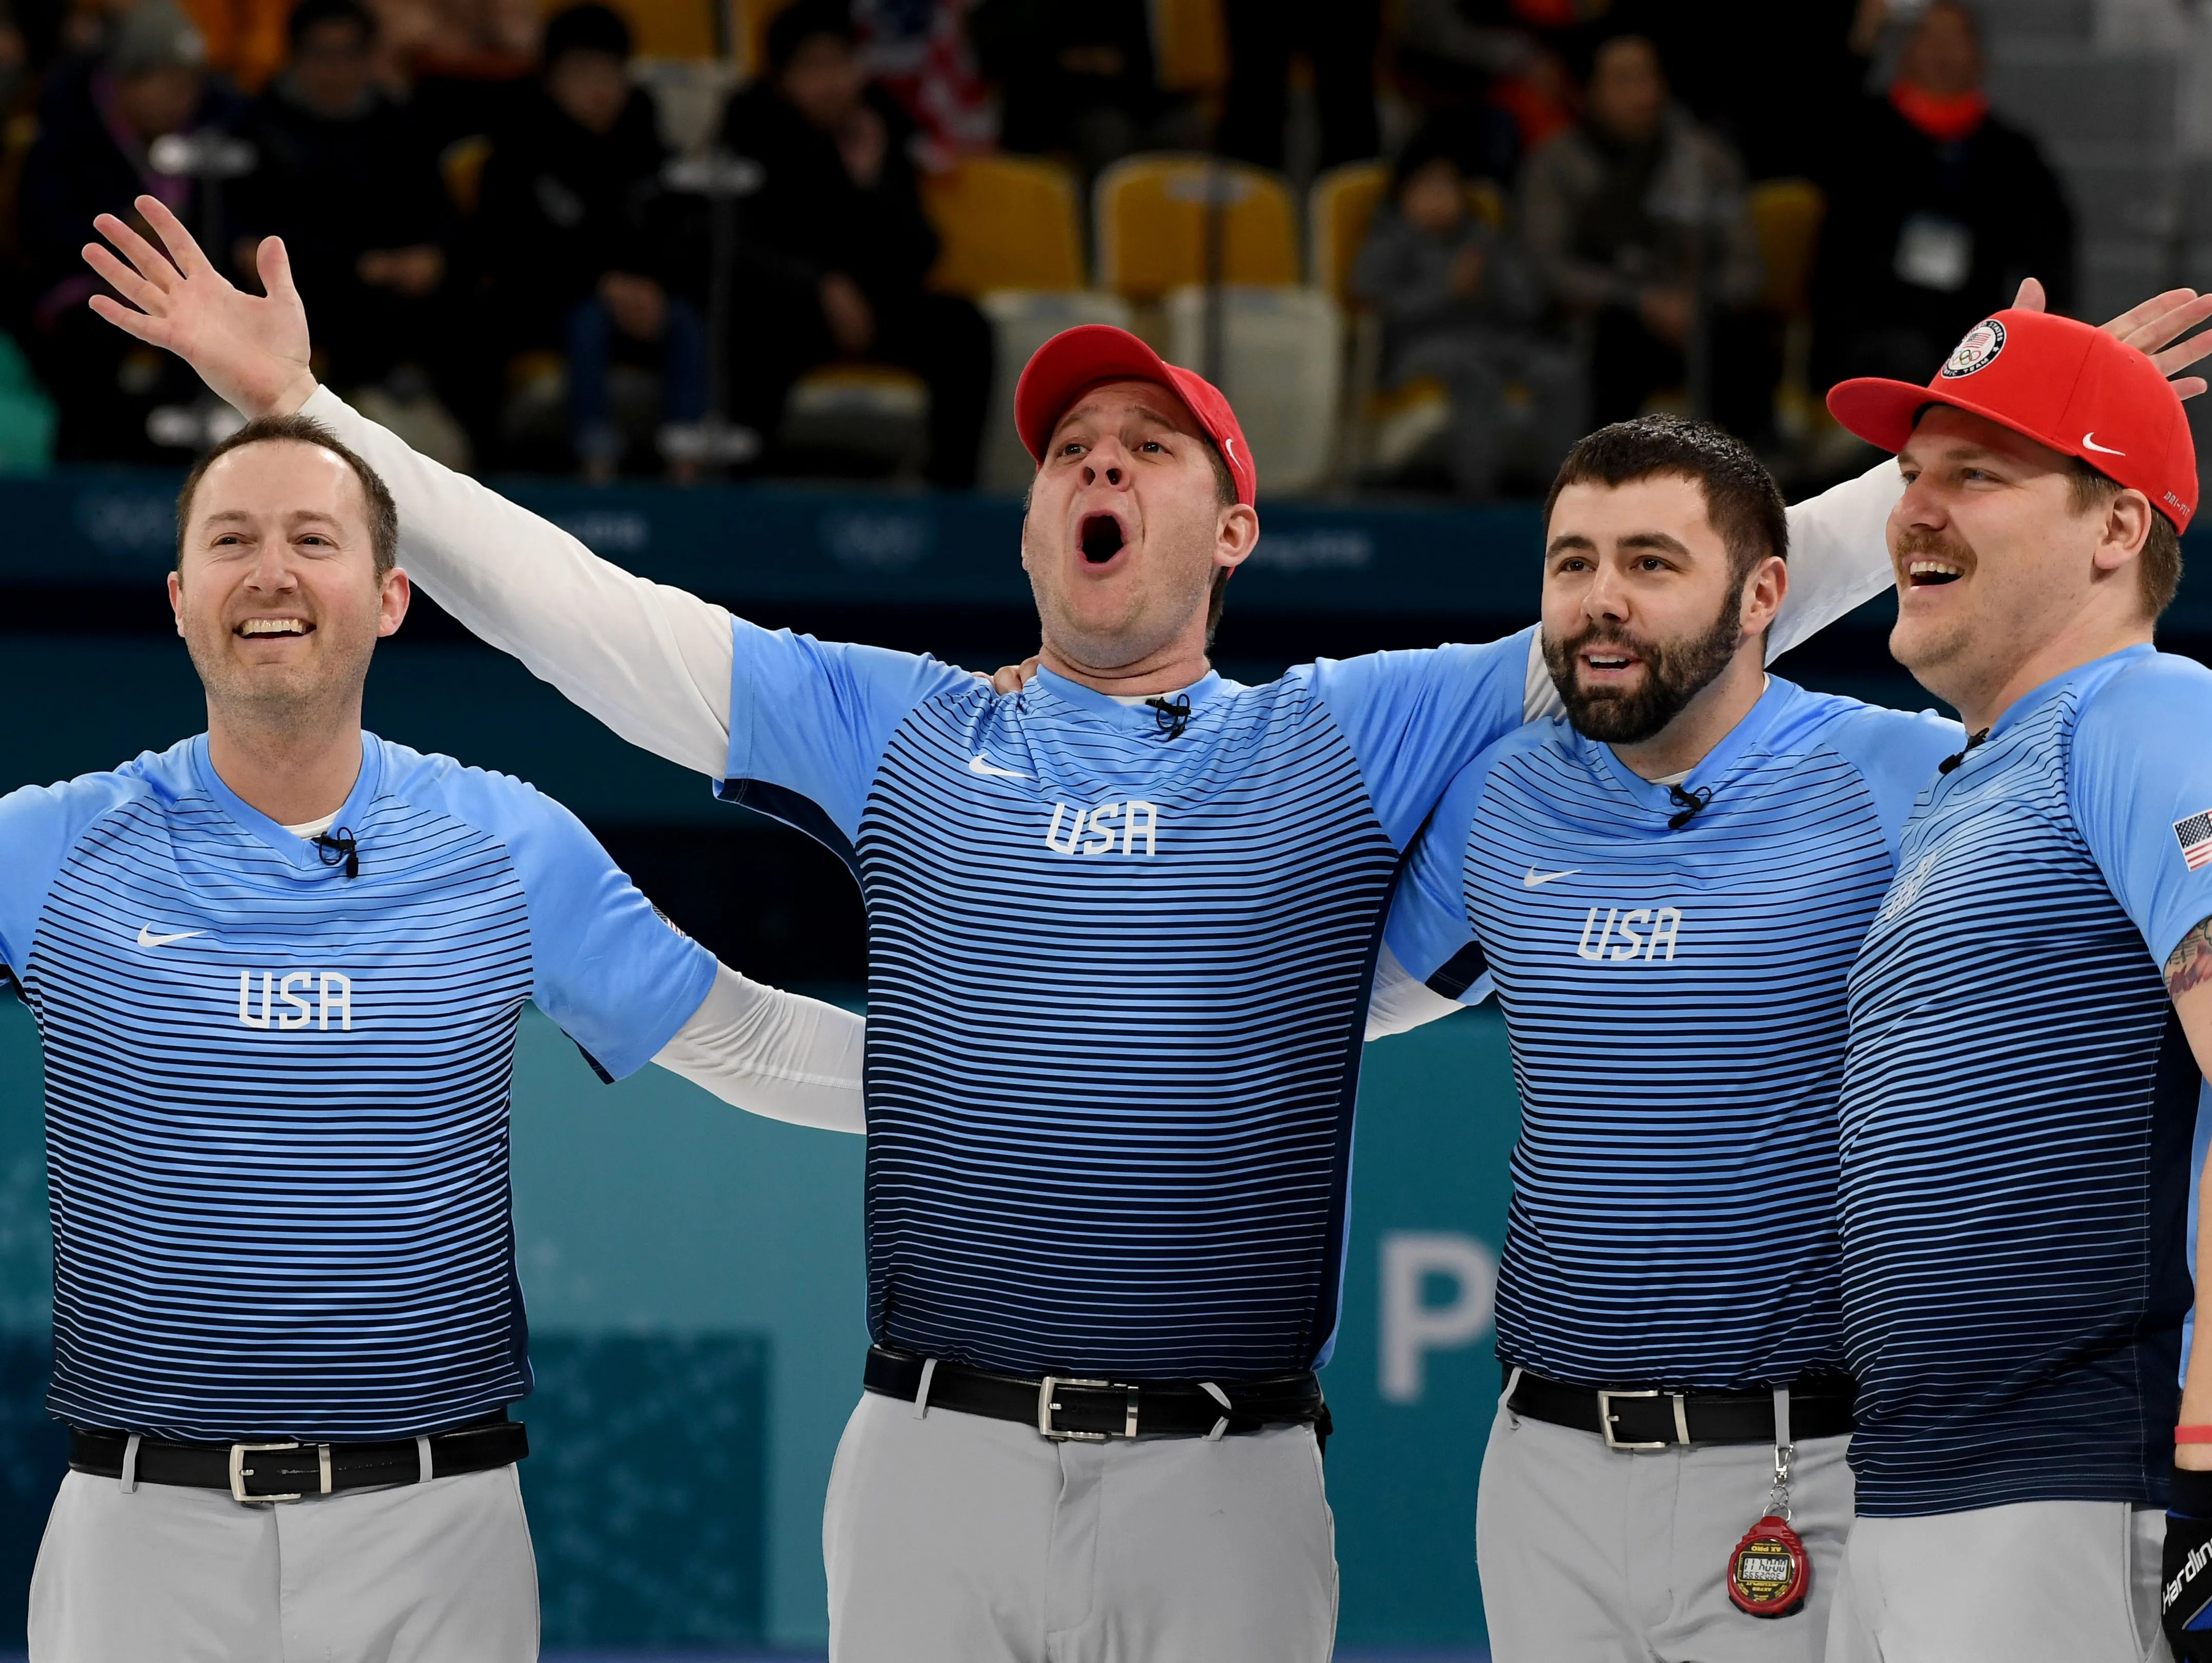 Best images from Saturday at Winter Olympics